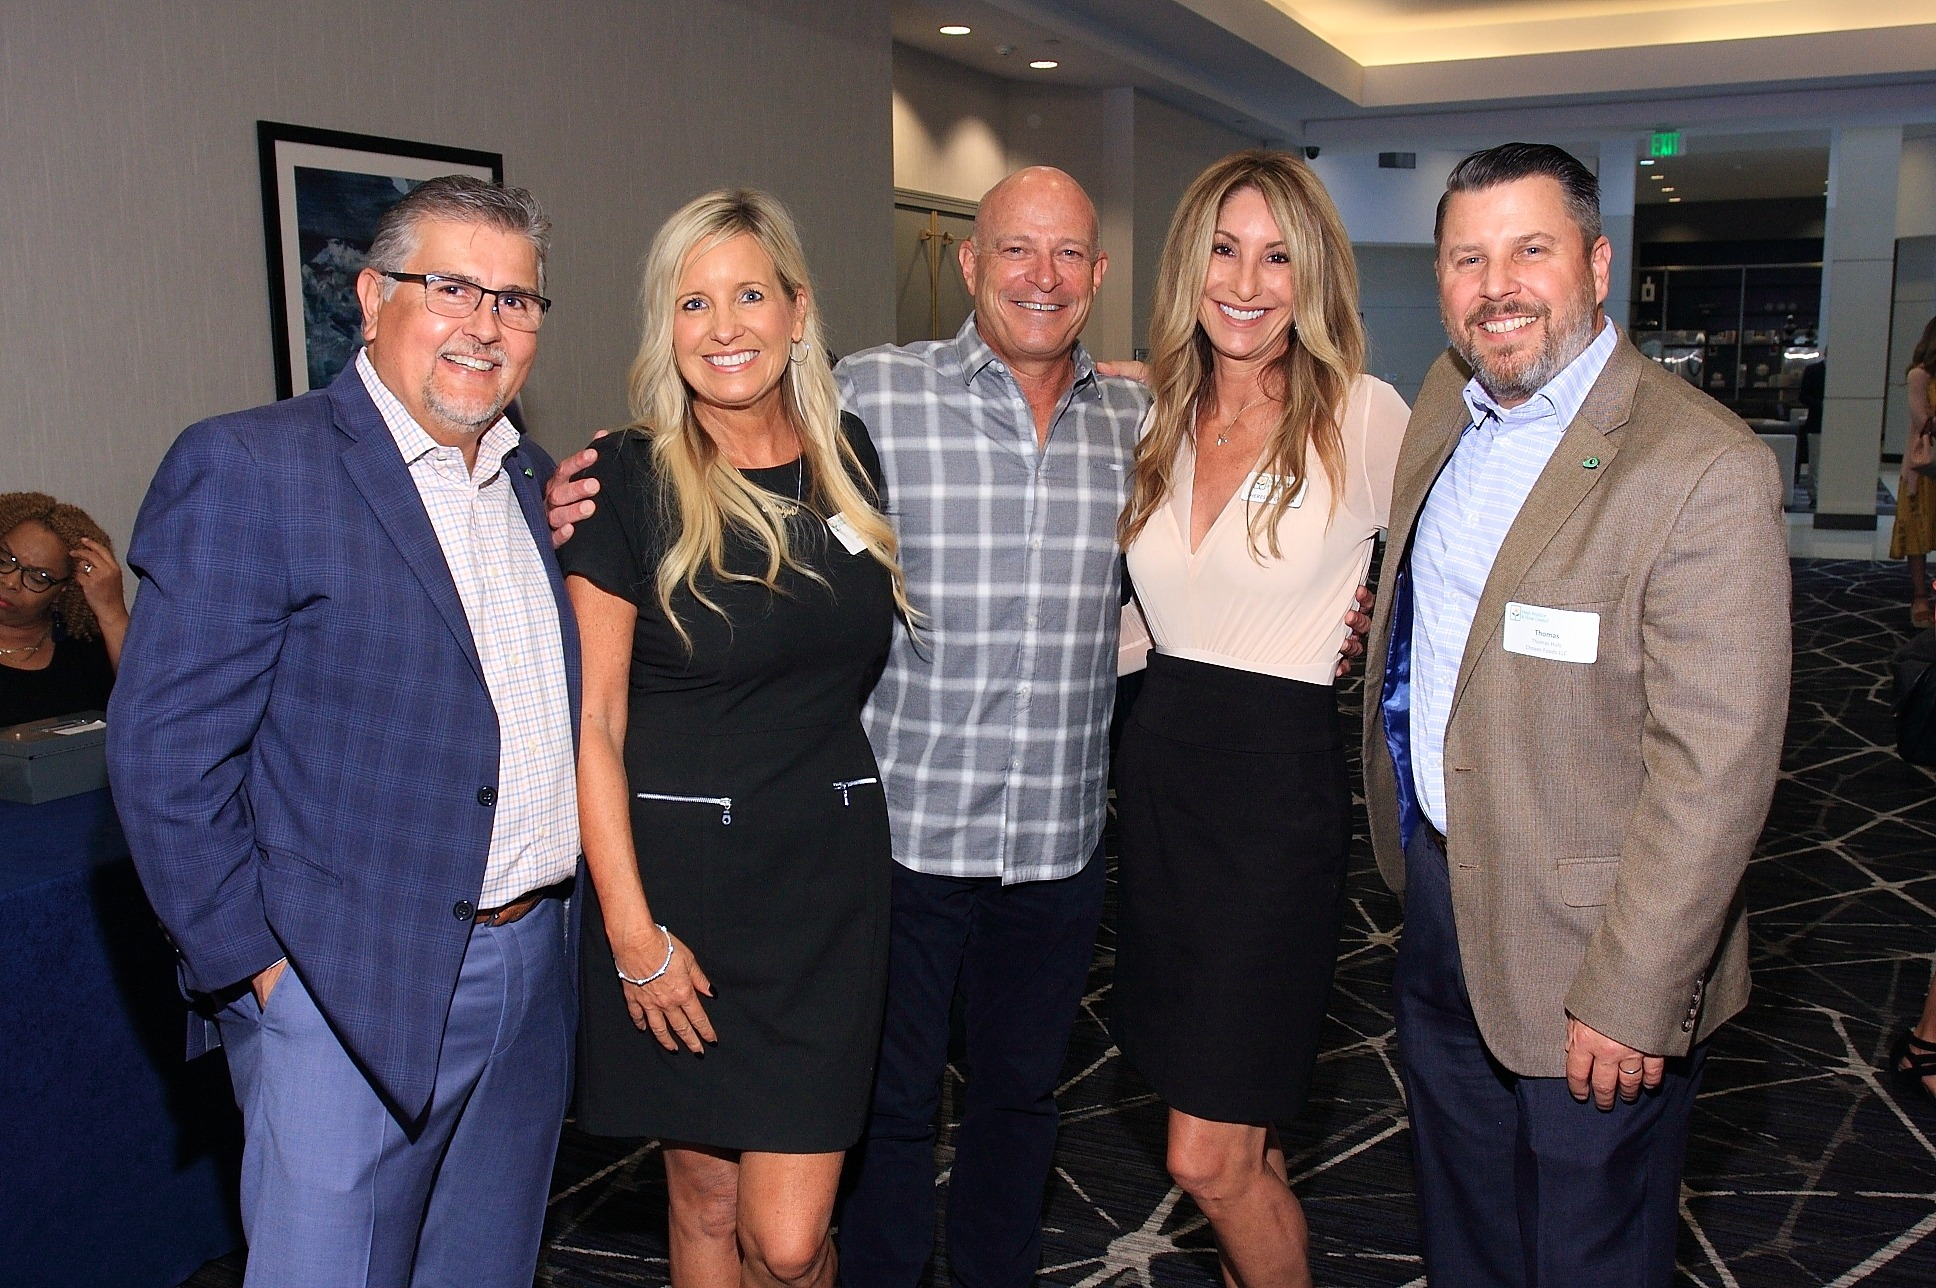 Dan Acevedo of GreenFruit Avocados, Kristyn Lawson with PSM, Jeff Kyer with Advantage Fresh, Therese Ferrara of Preferred Sales and Thomas Huls with Chosen Foods LLC.